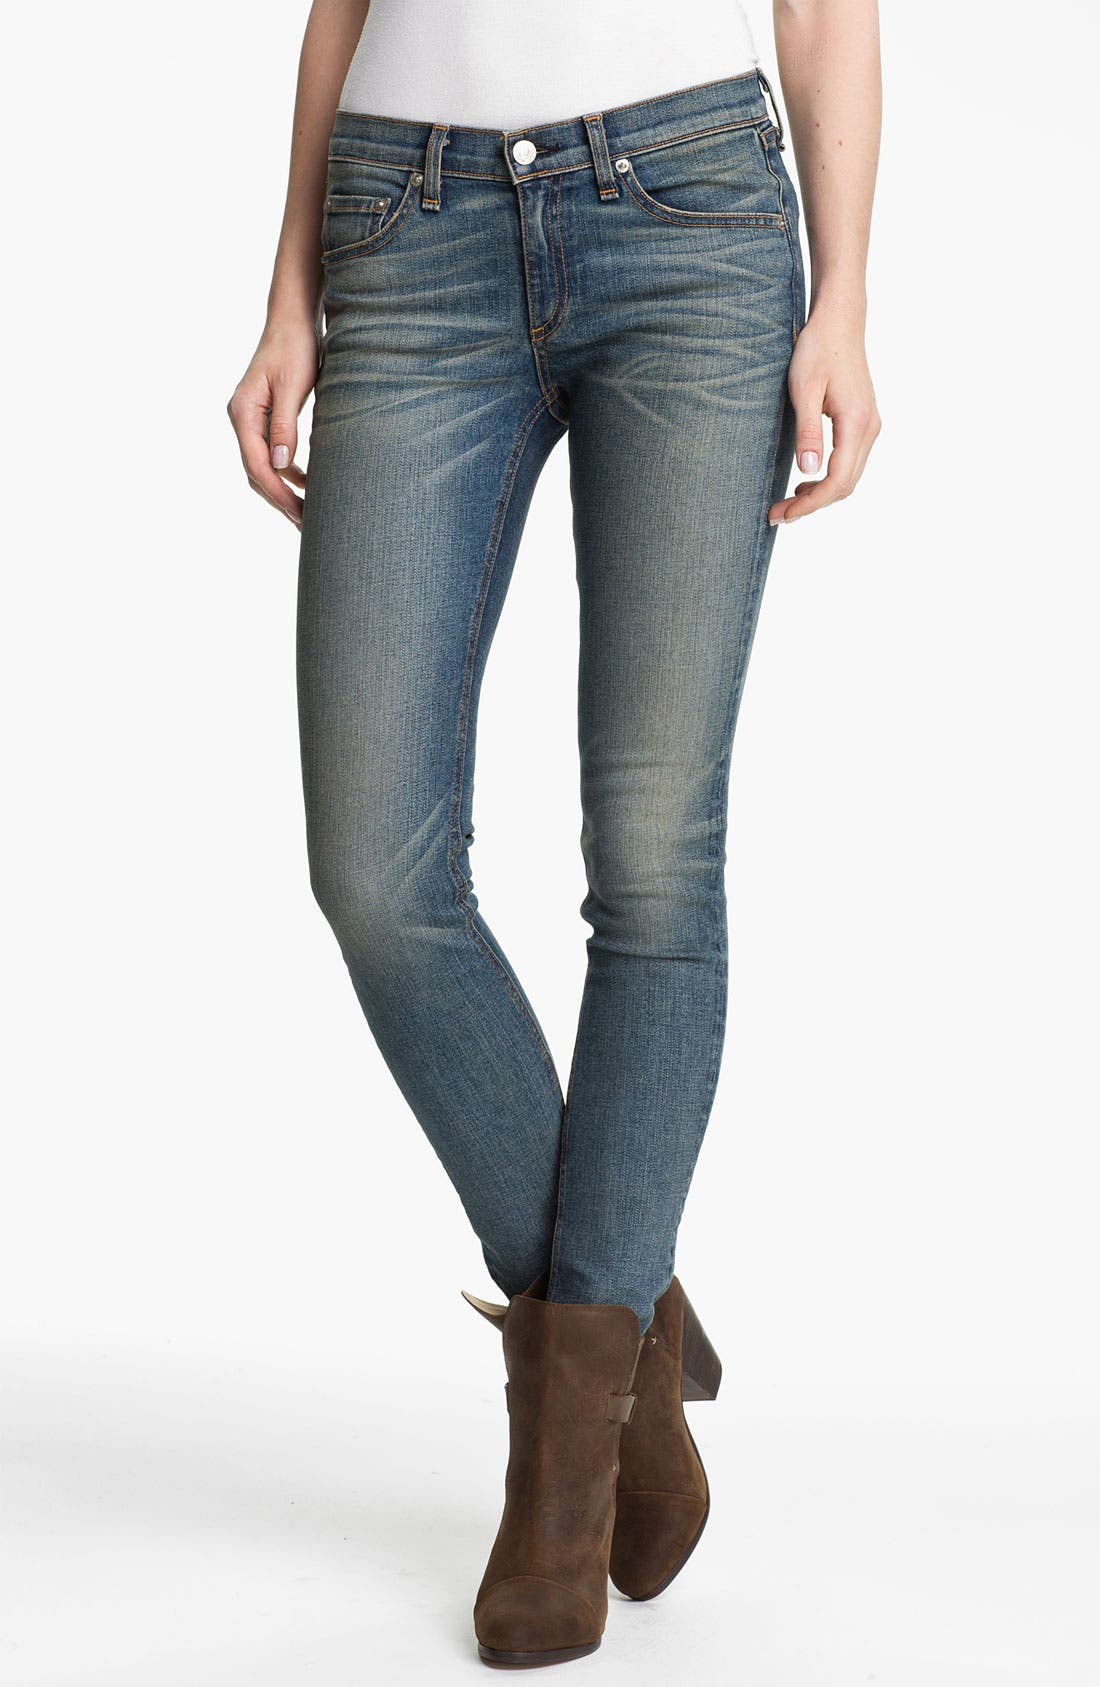 Alternate Image 1 Selected - rag & bone/JEAN Stretch Skinny Jeans